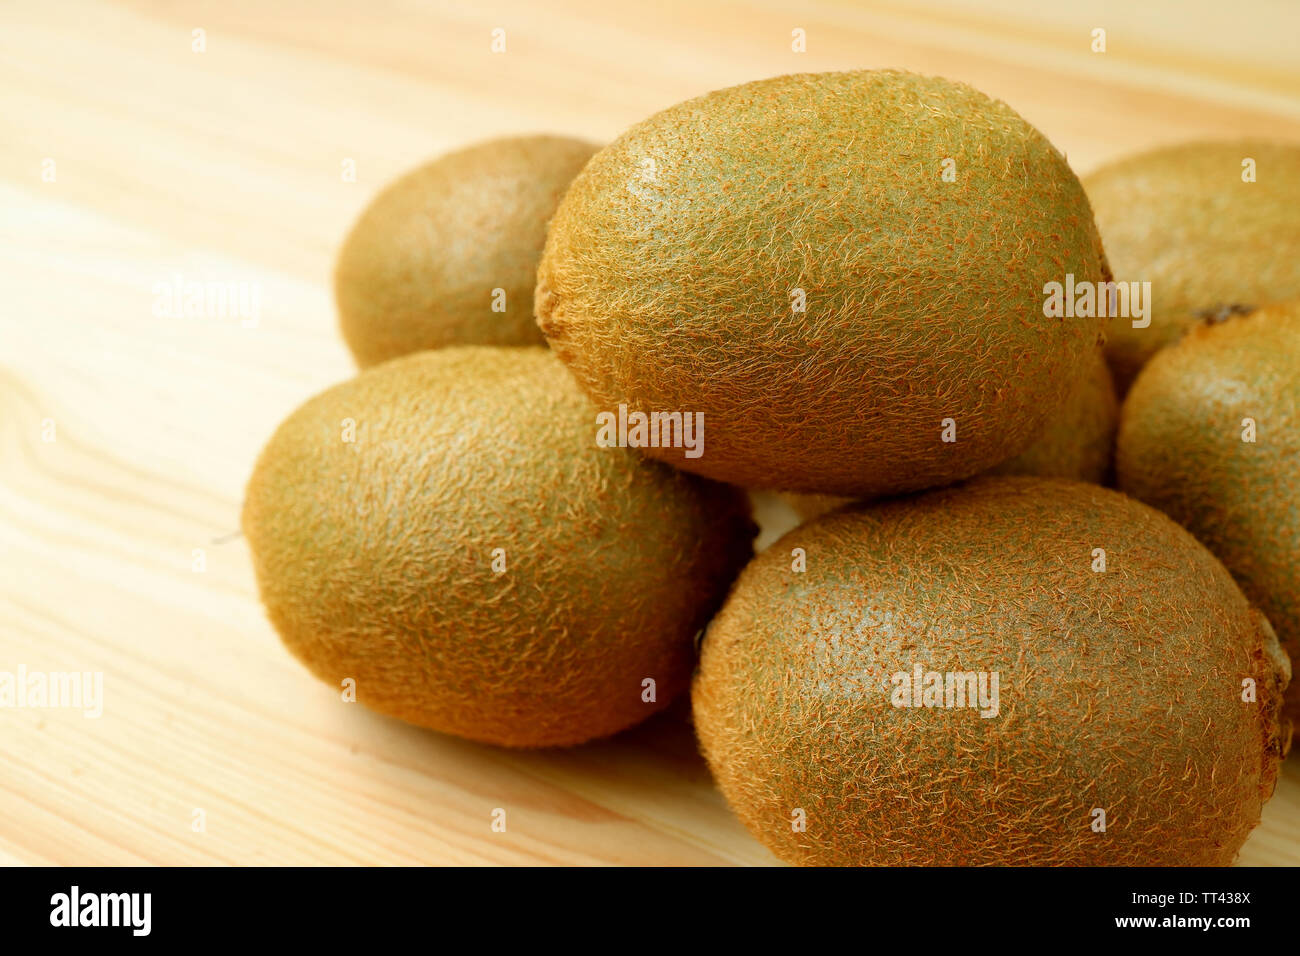 Closeup Heap of fresh kiwi fruits isolated on the wooden table - Stock Image